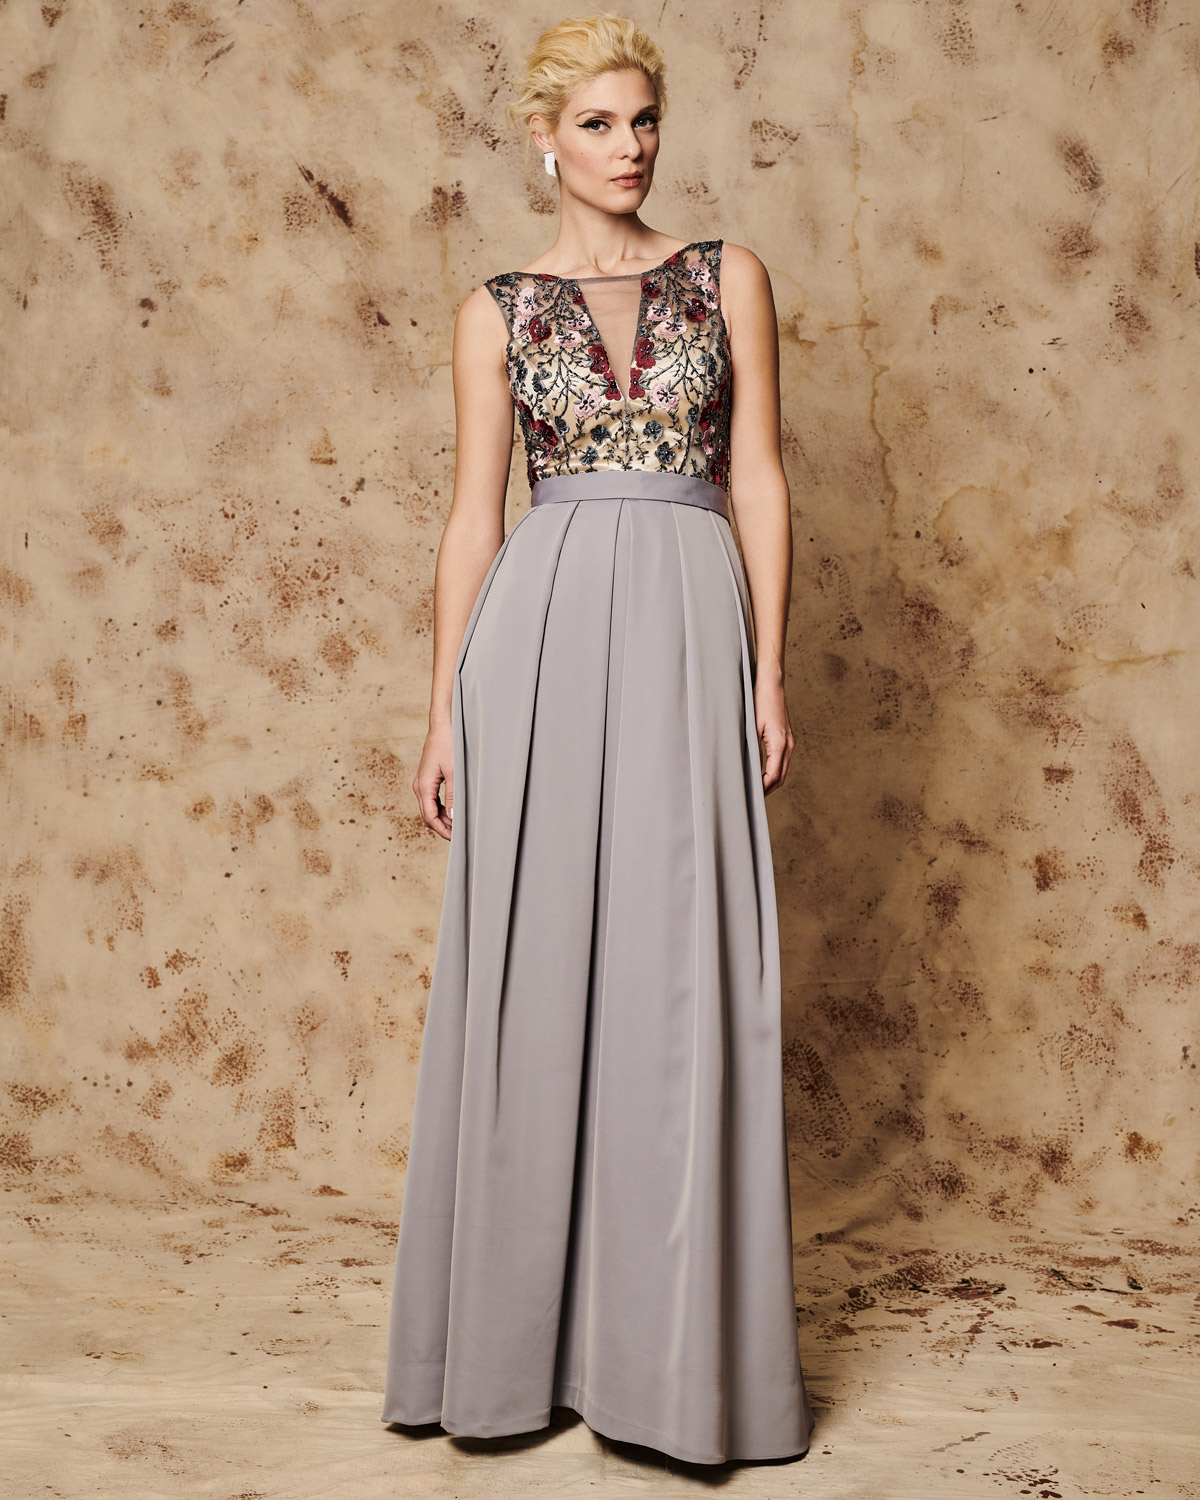 Classic Dresses / Long evening dress with applique flowers and beading